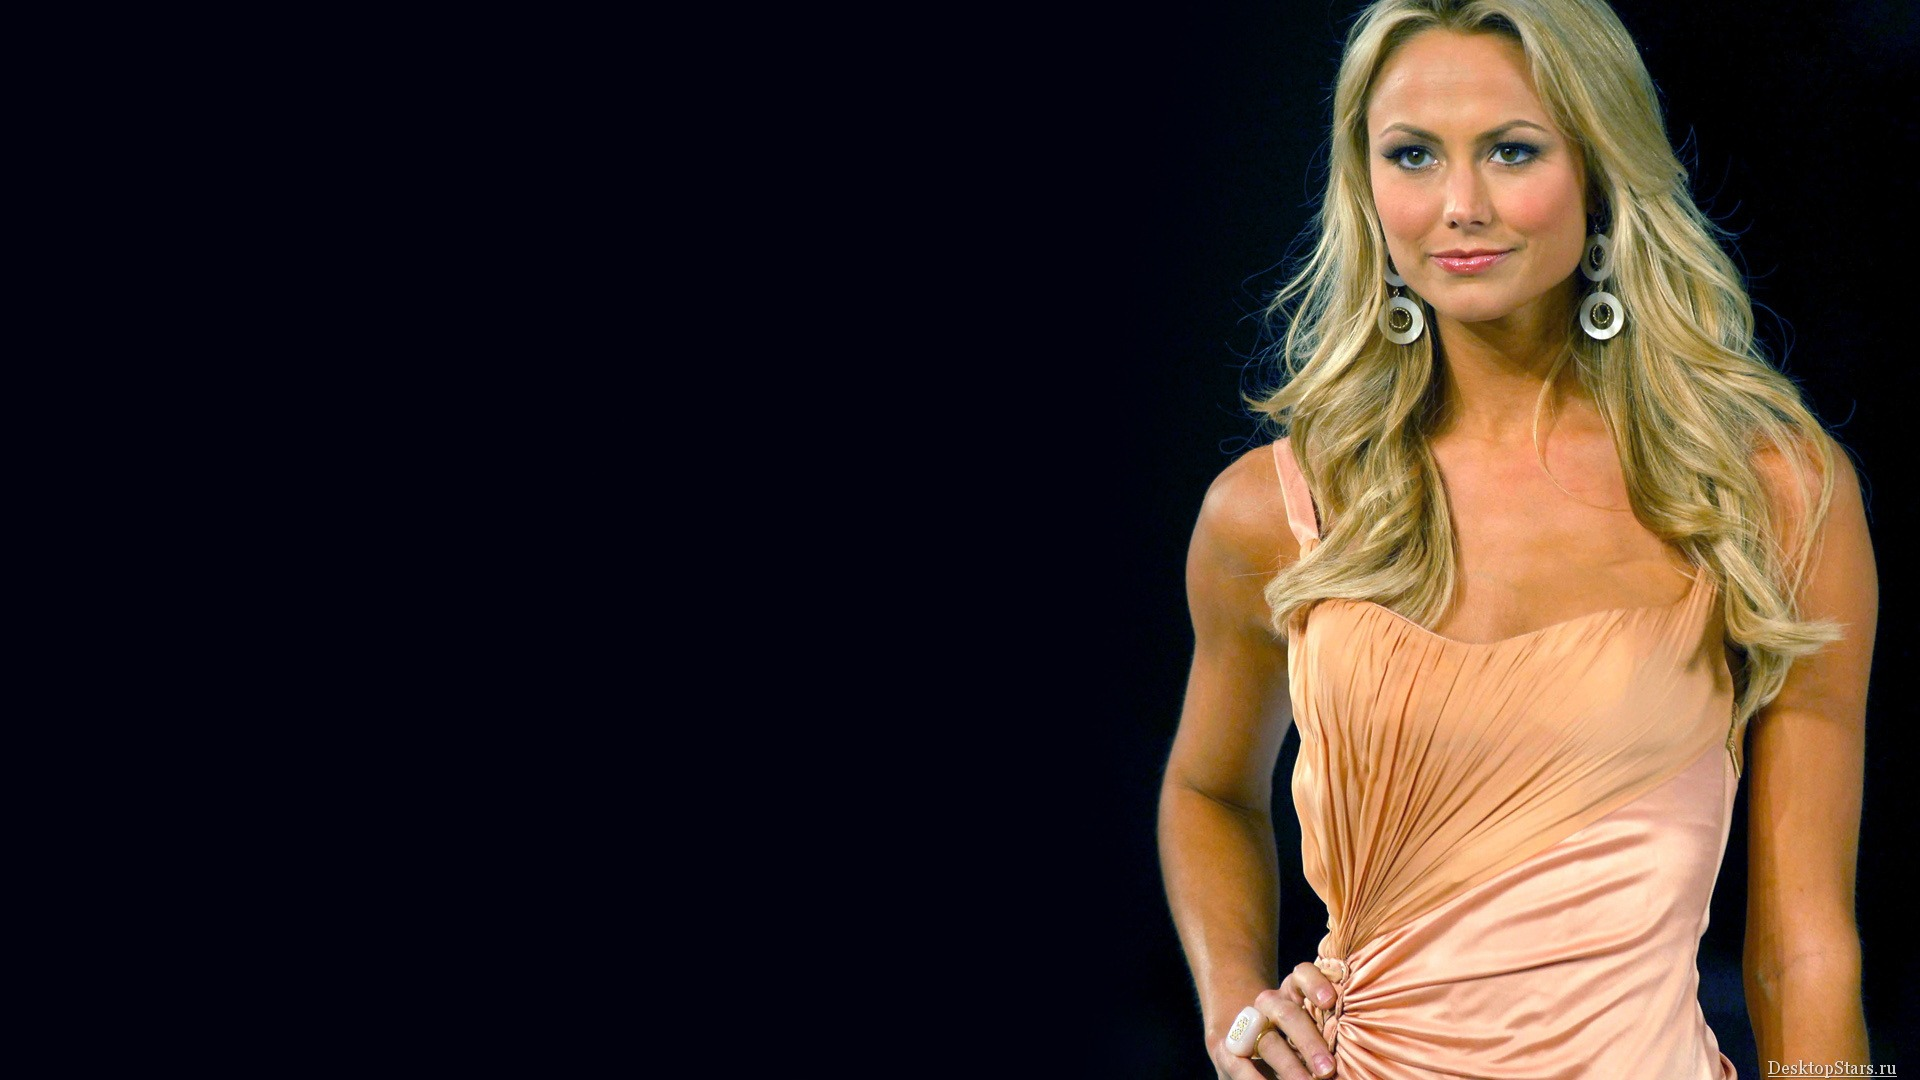 Stacy Keibler #038 - 1920x1080 Wallpapers Pictures Photos Images